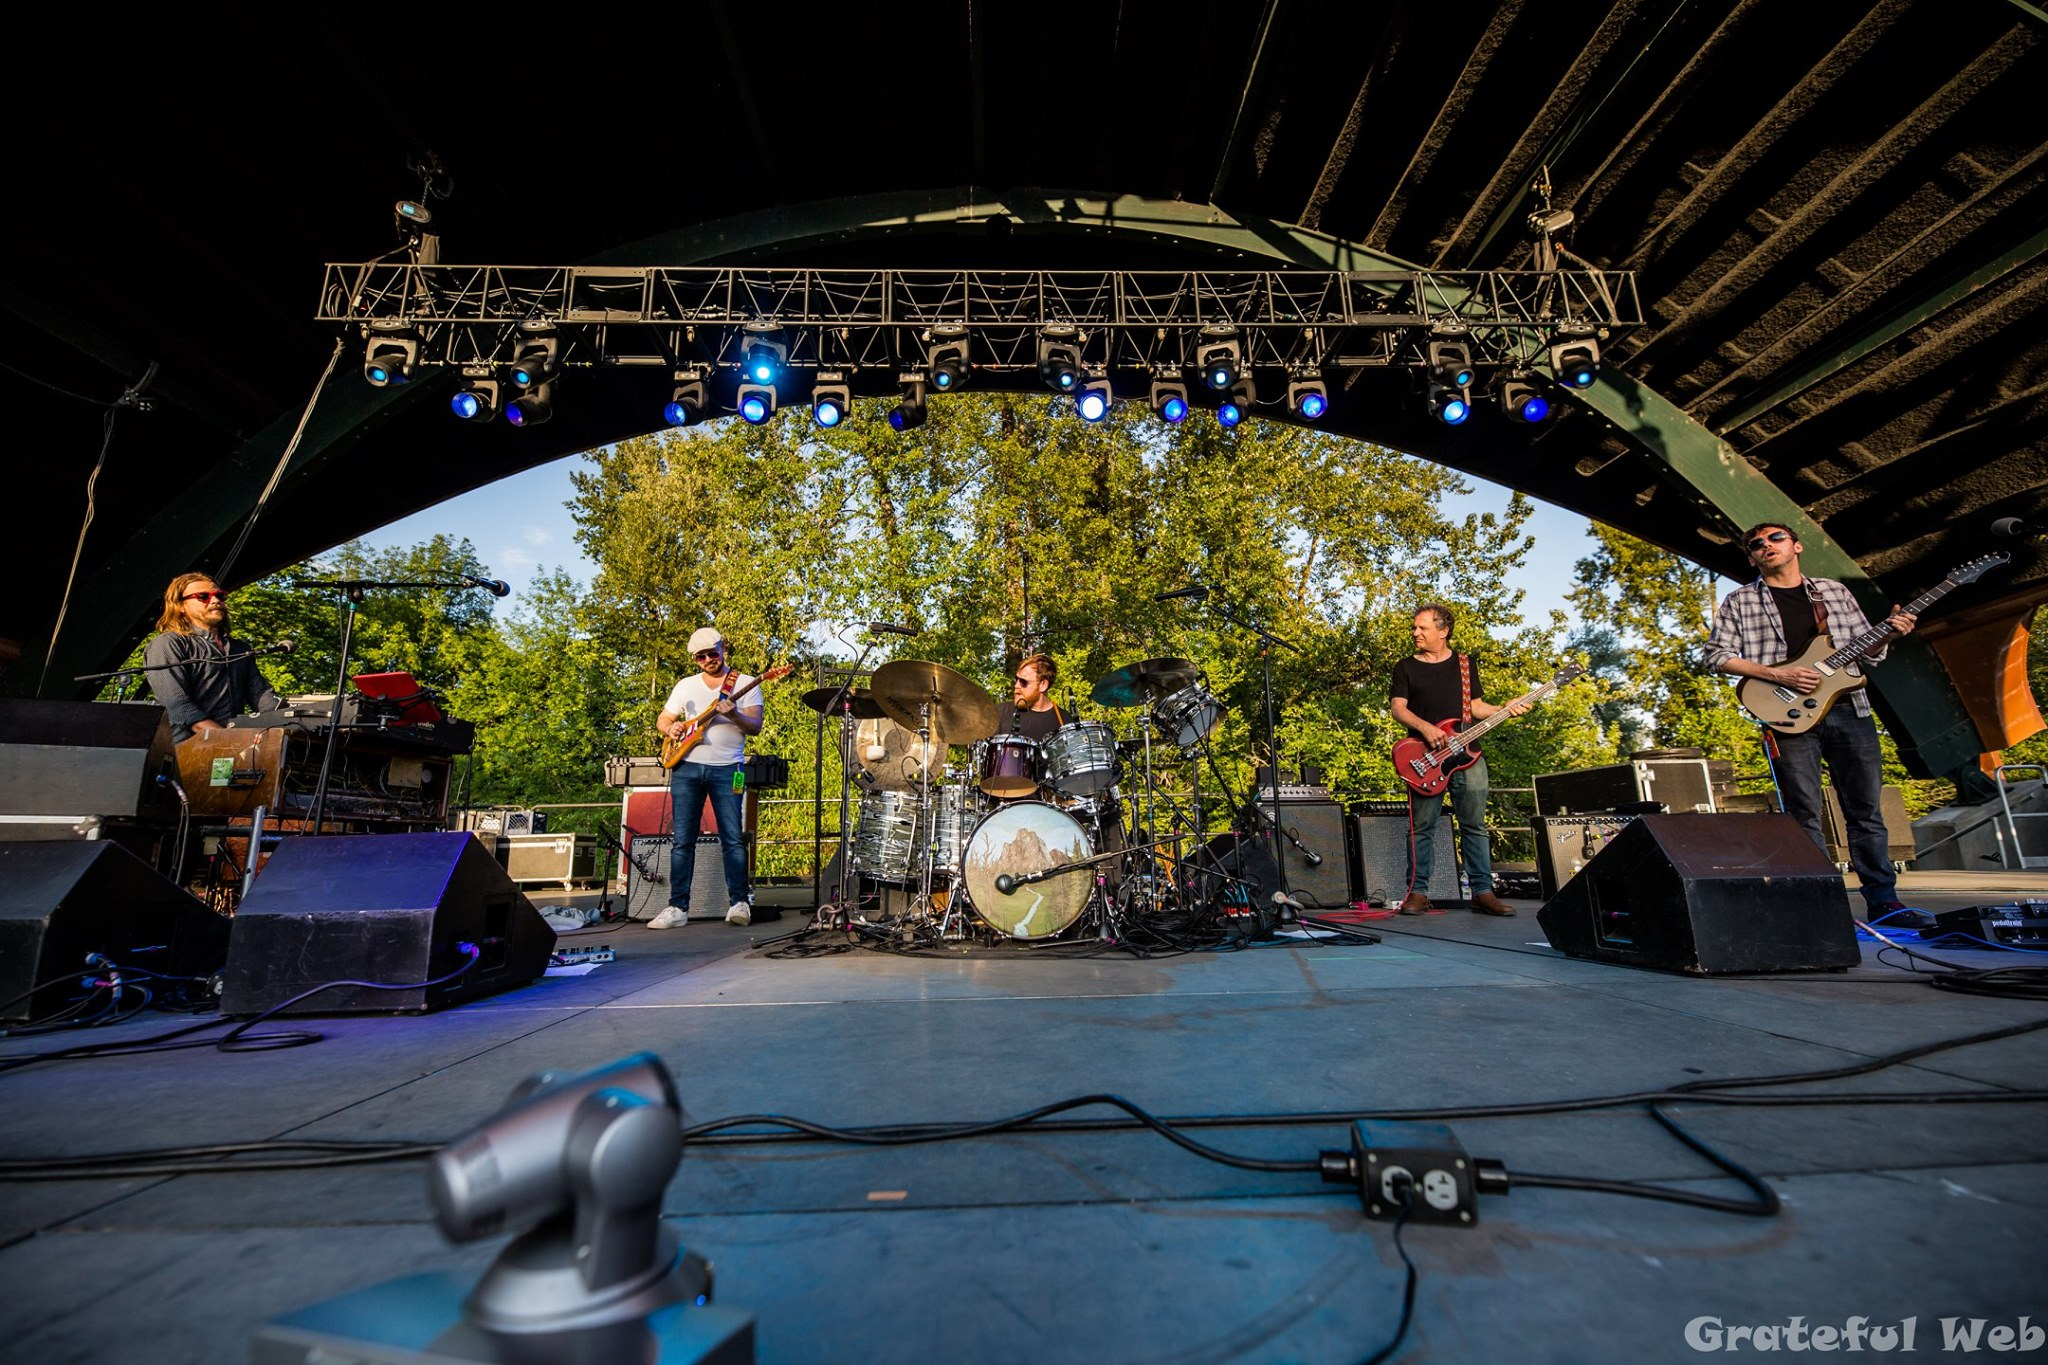 Joe Russo's Almost Dead will play Thursday night